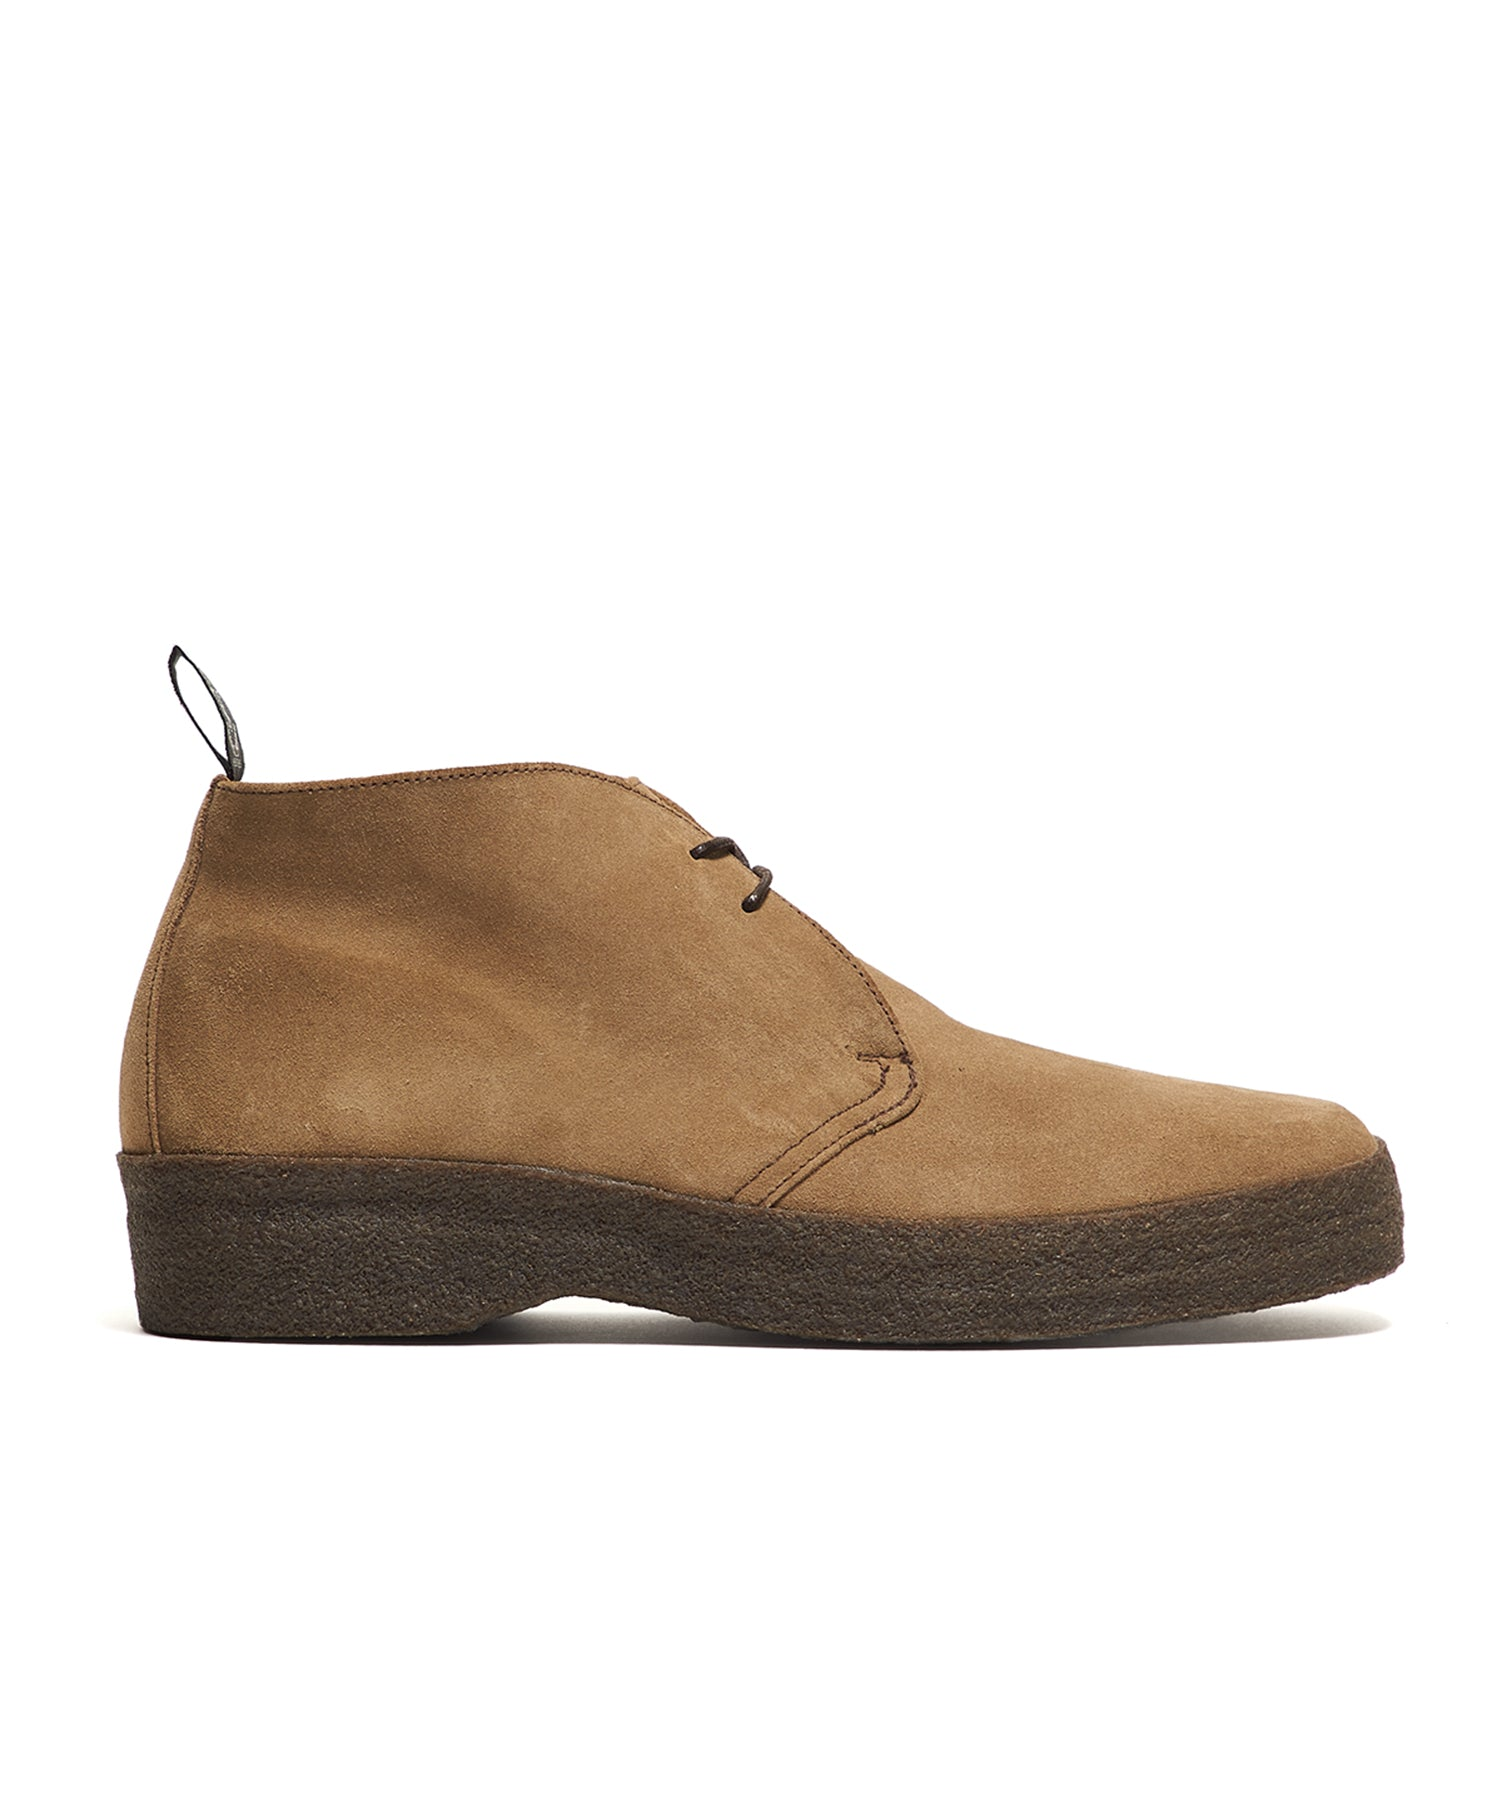 Sanders Chukka Boot in Dirty Buck